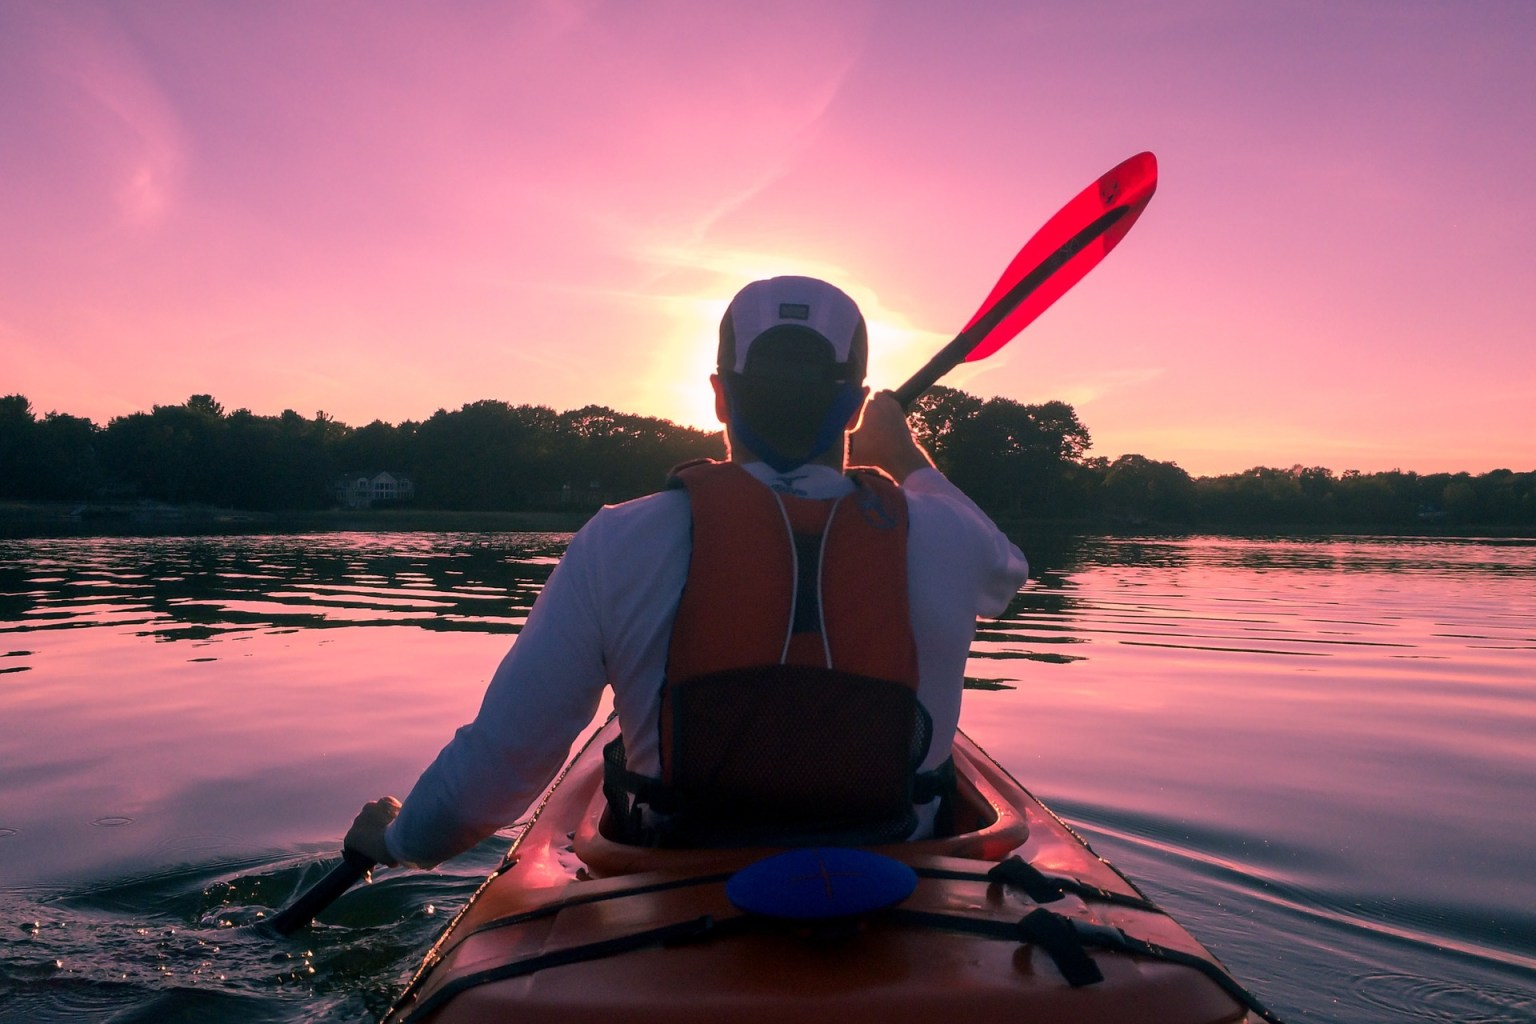 Image: Person kayaking with their back to the camera, heading off into the sunset